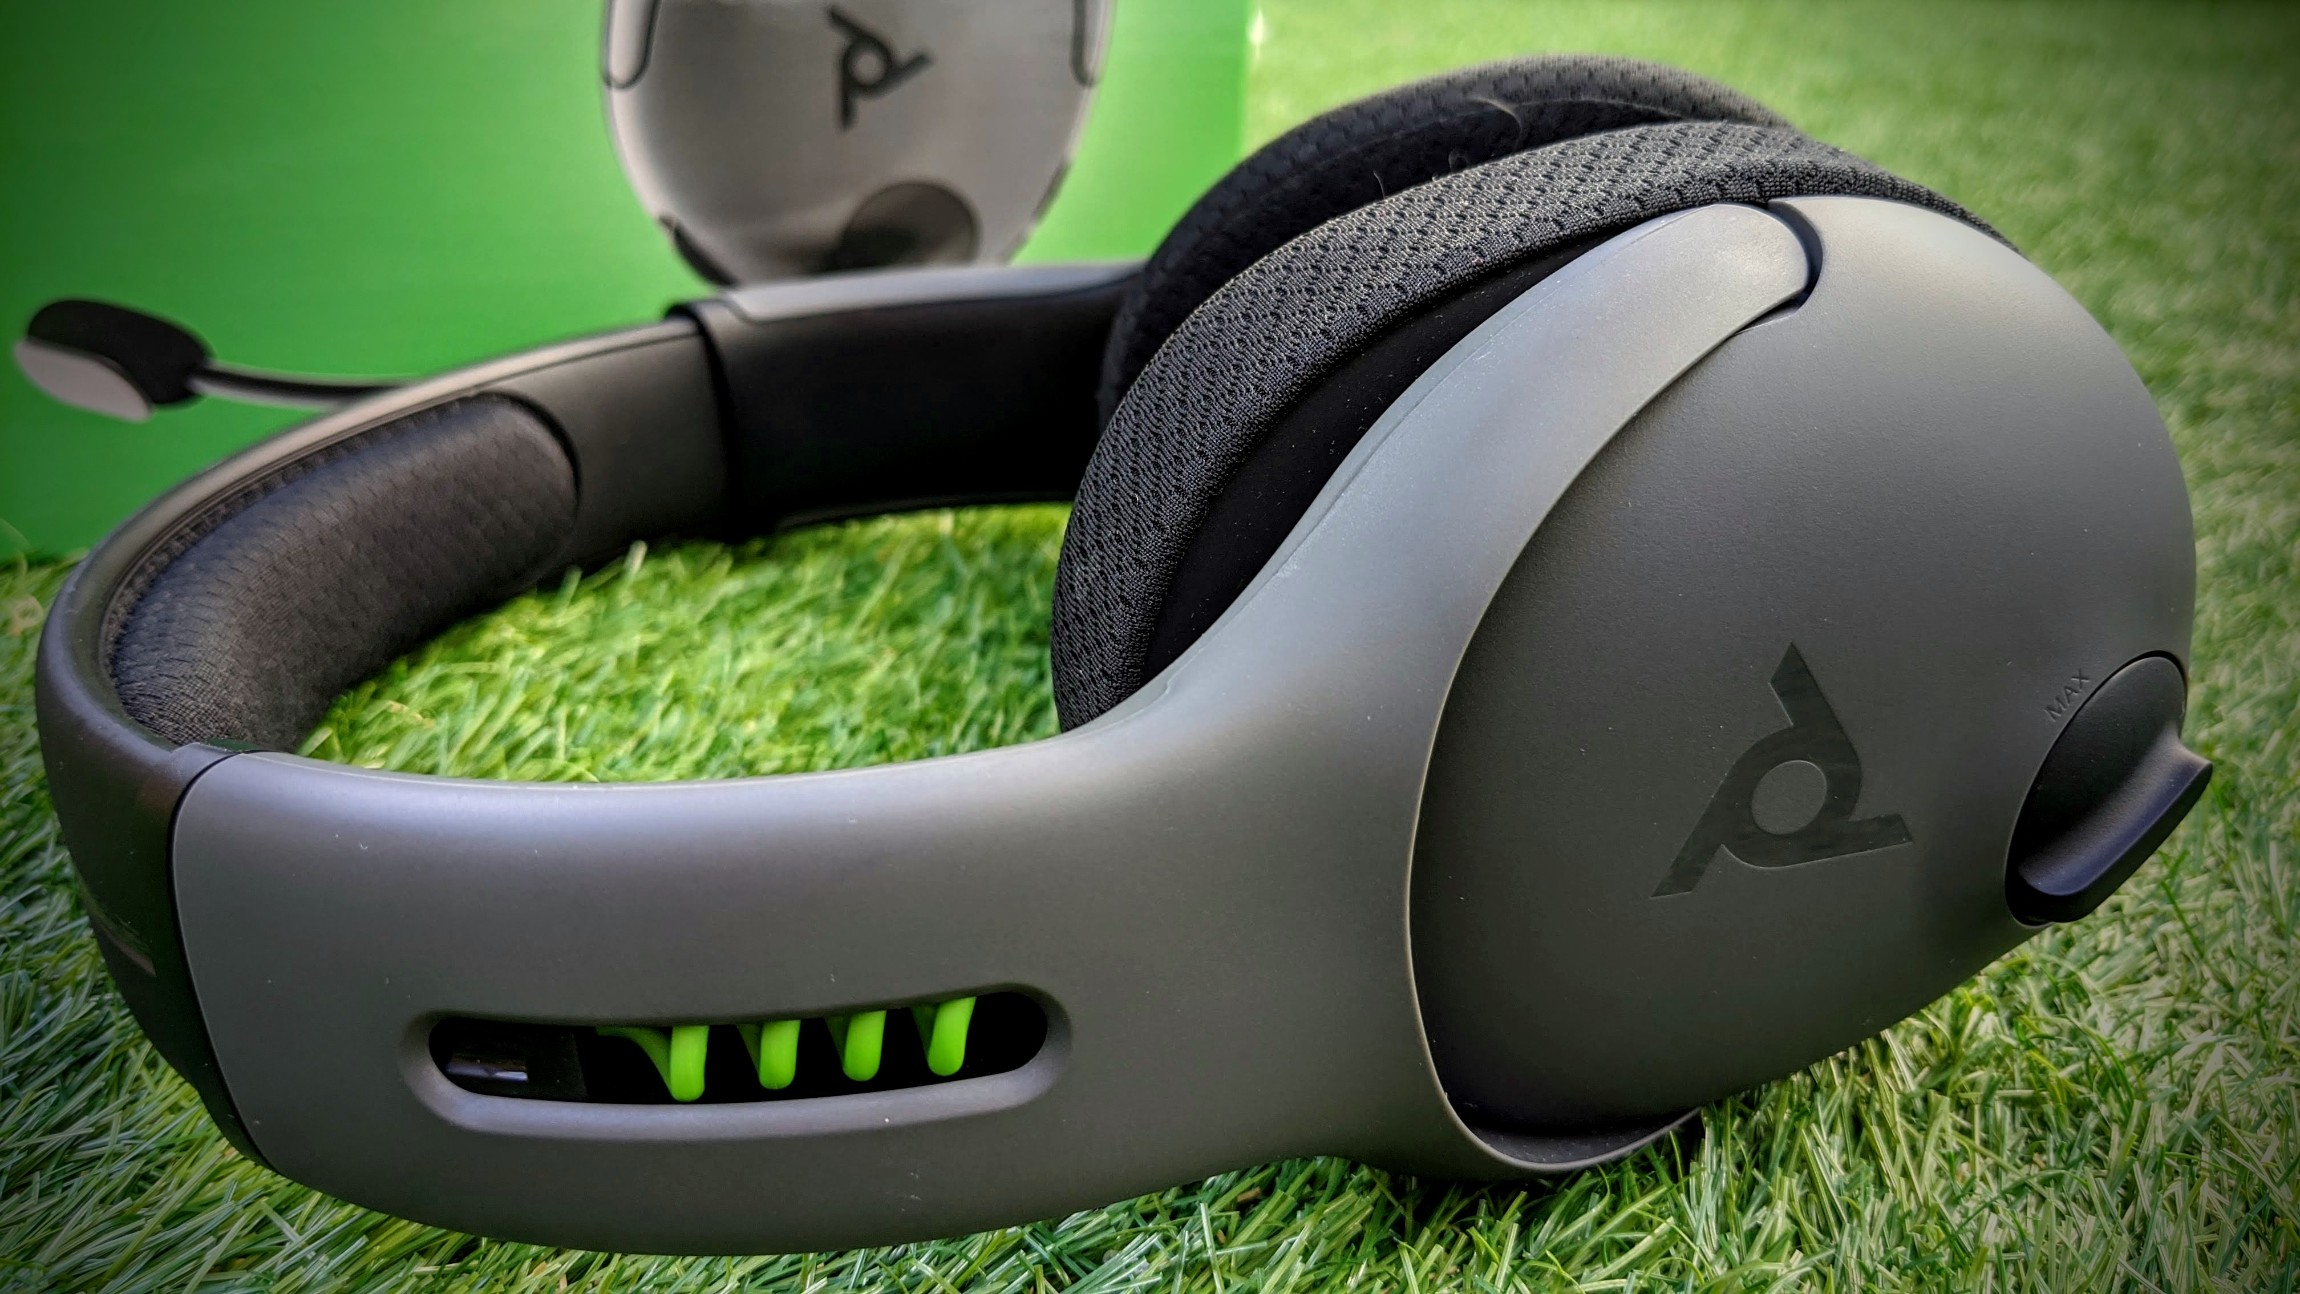 Pdp Lvl50 Wireless Gaming Headset For Xbox One Review Thexboxhub